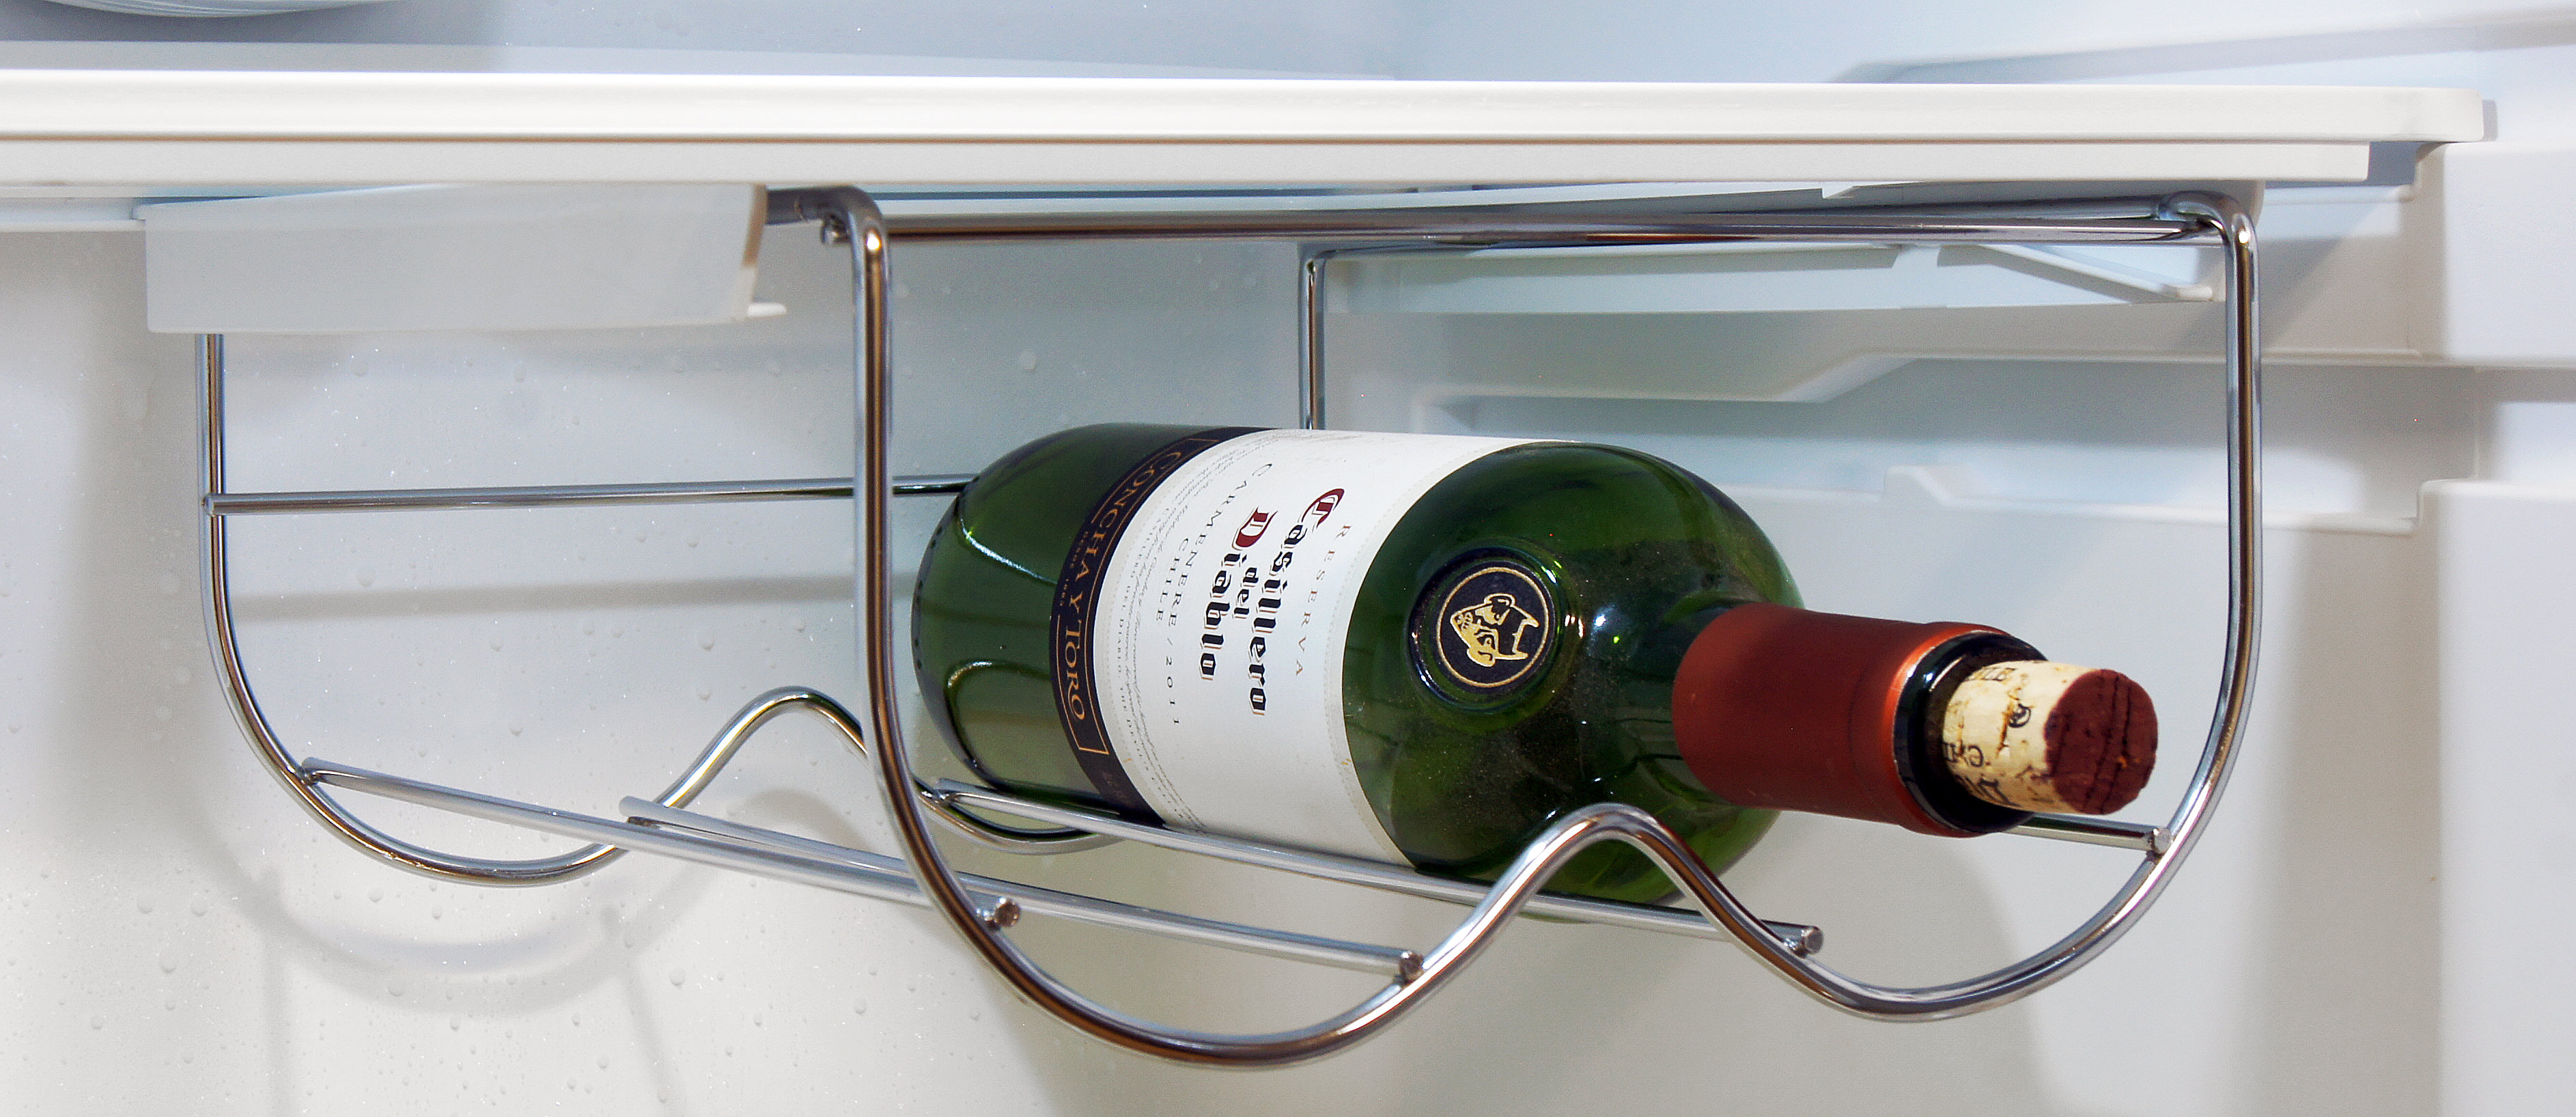 The Fagor FFJA4845X's wine rack can fit two bottles, and can also slide left and right for optimal storage in relation to your other groceries.